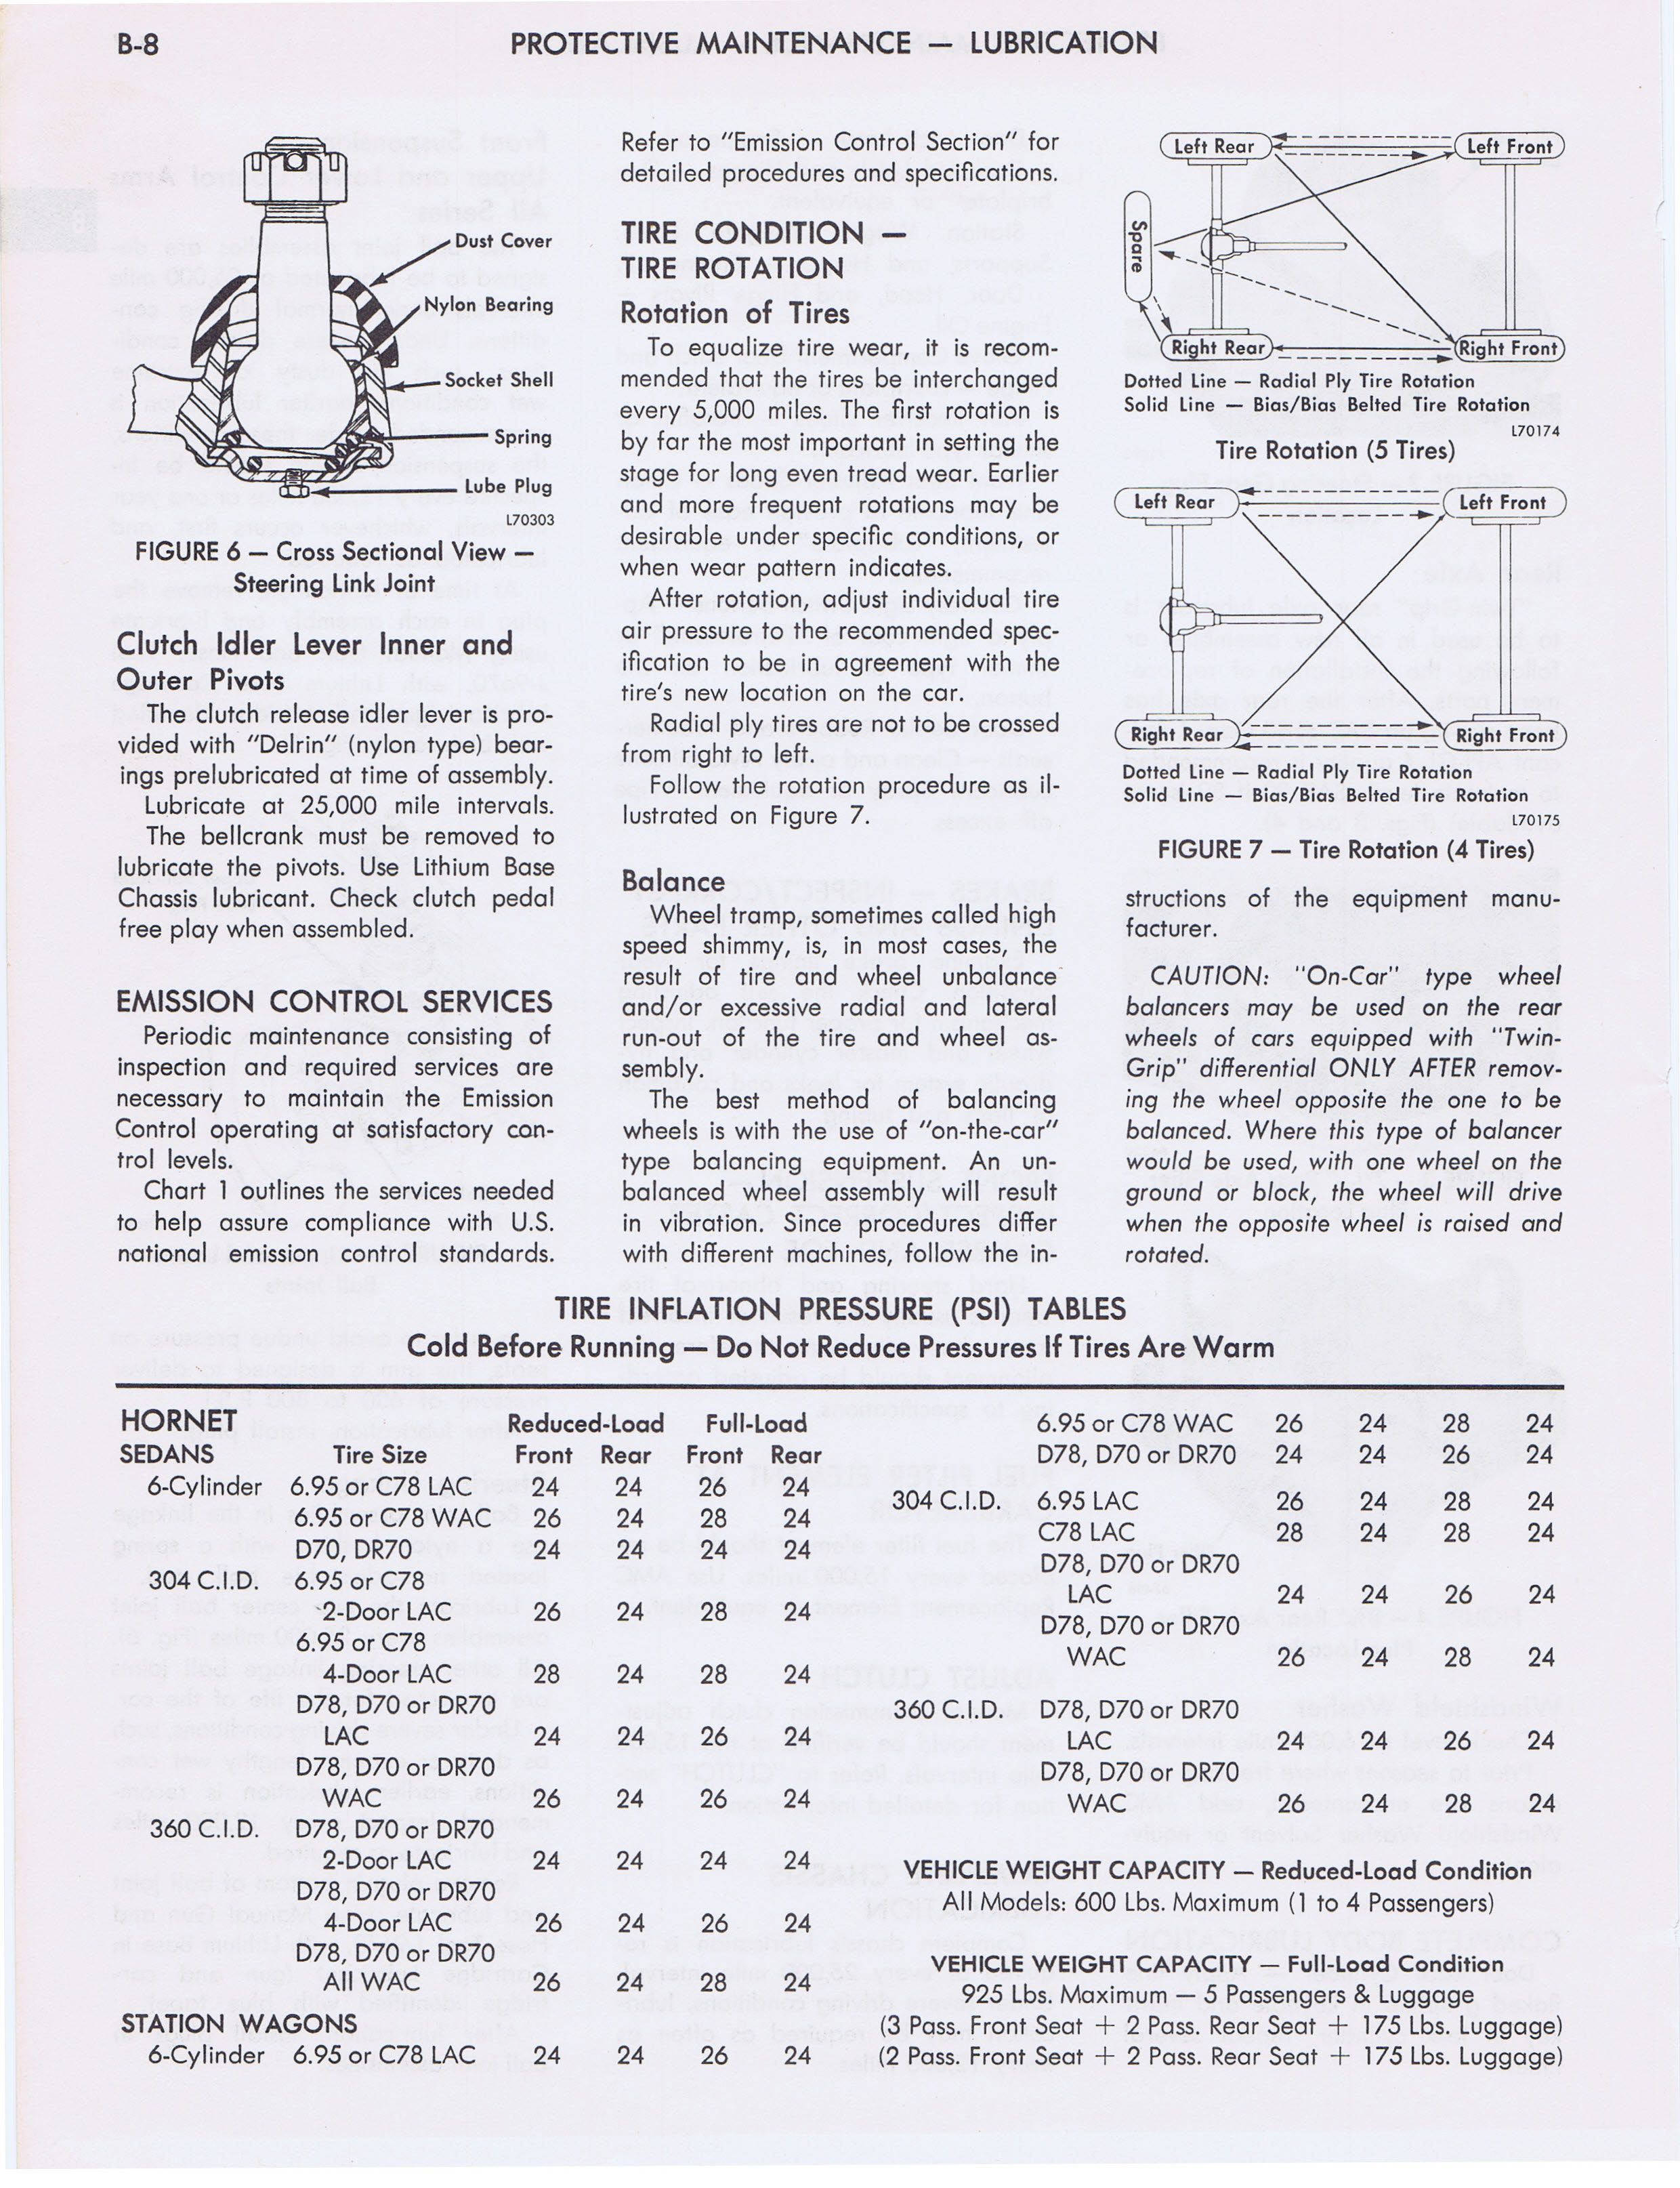 1973 AMC Technical Service Manual page 16 of 487